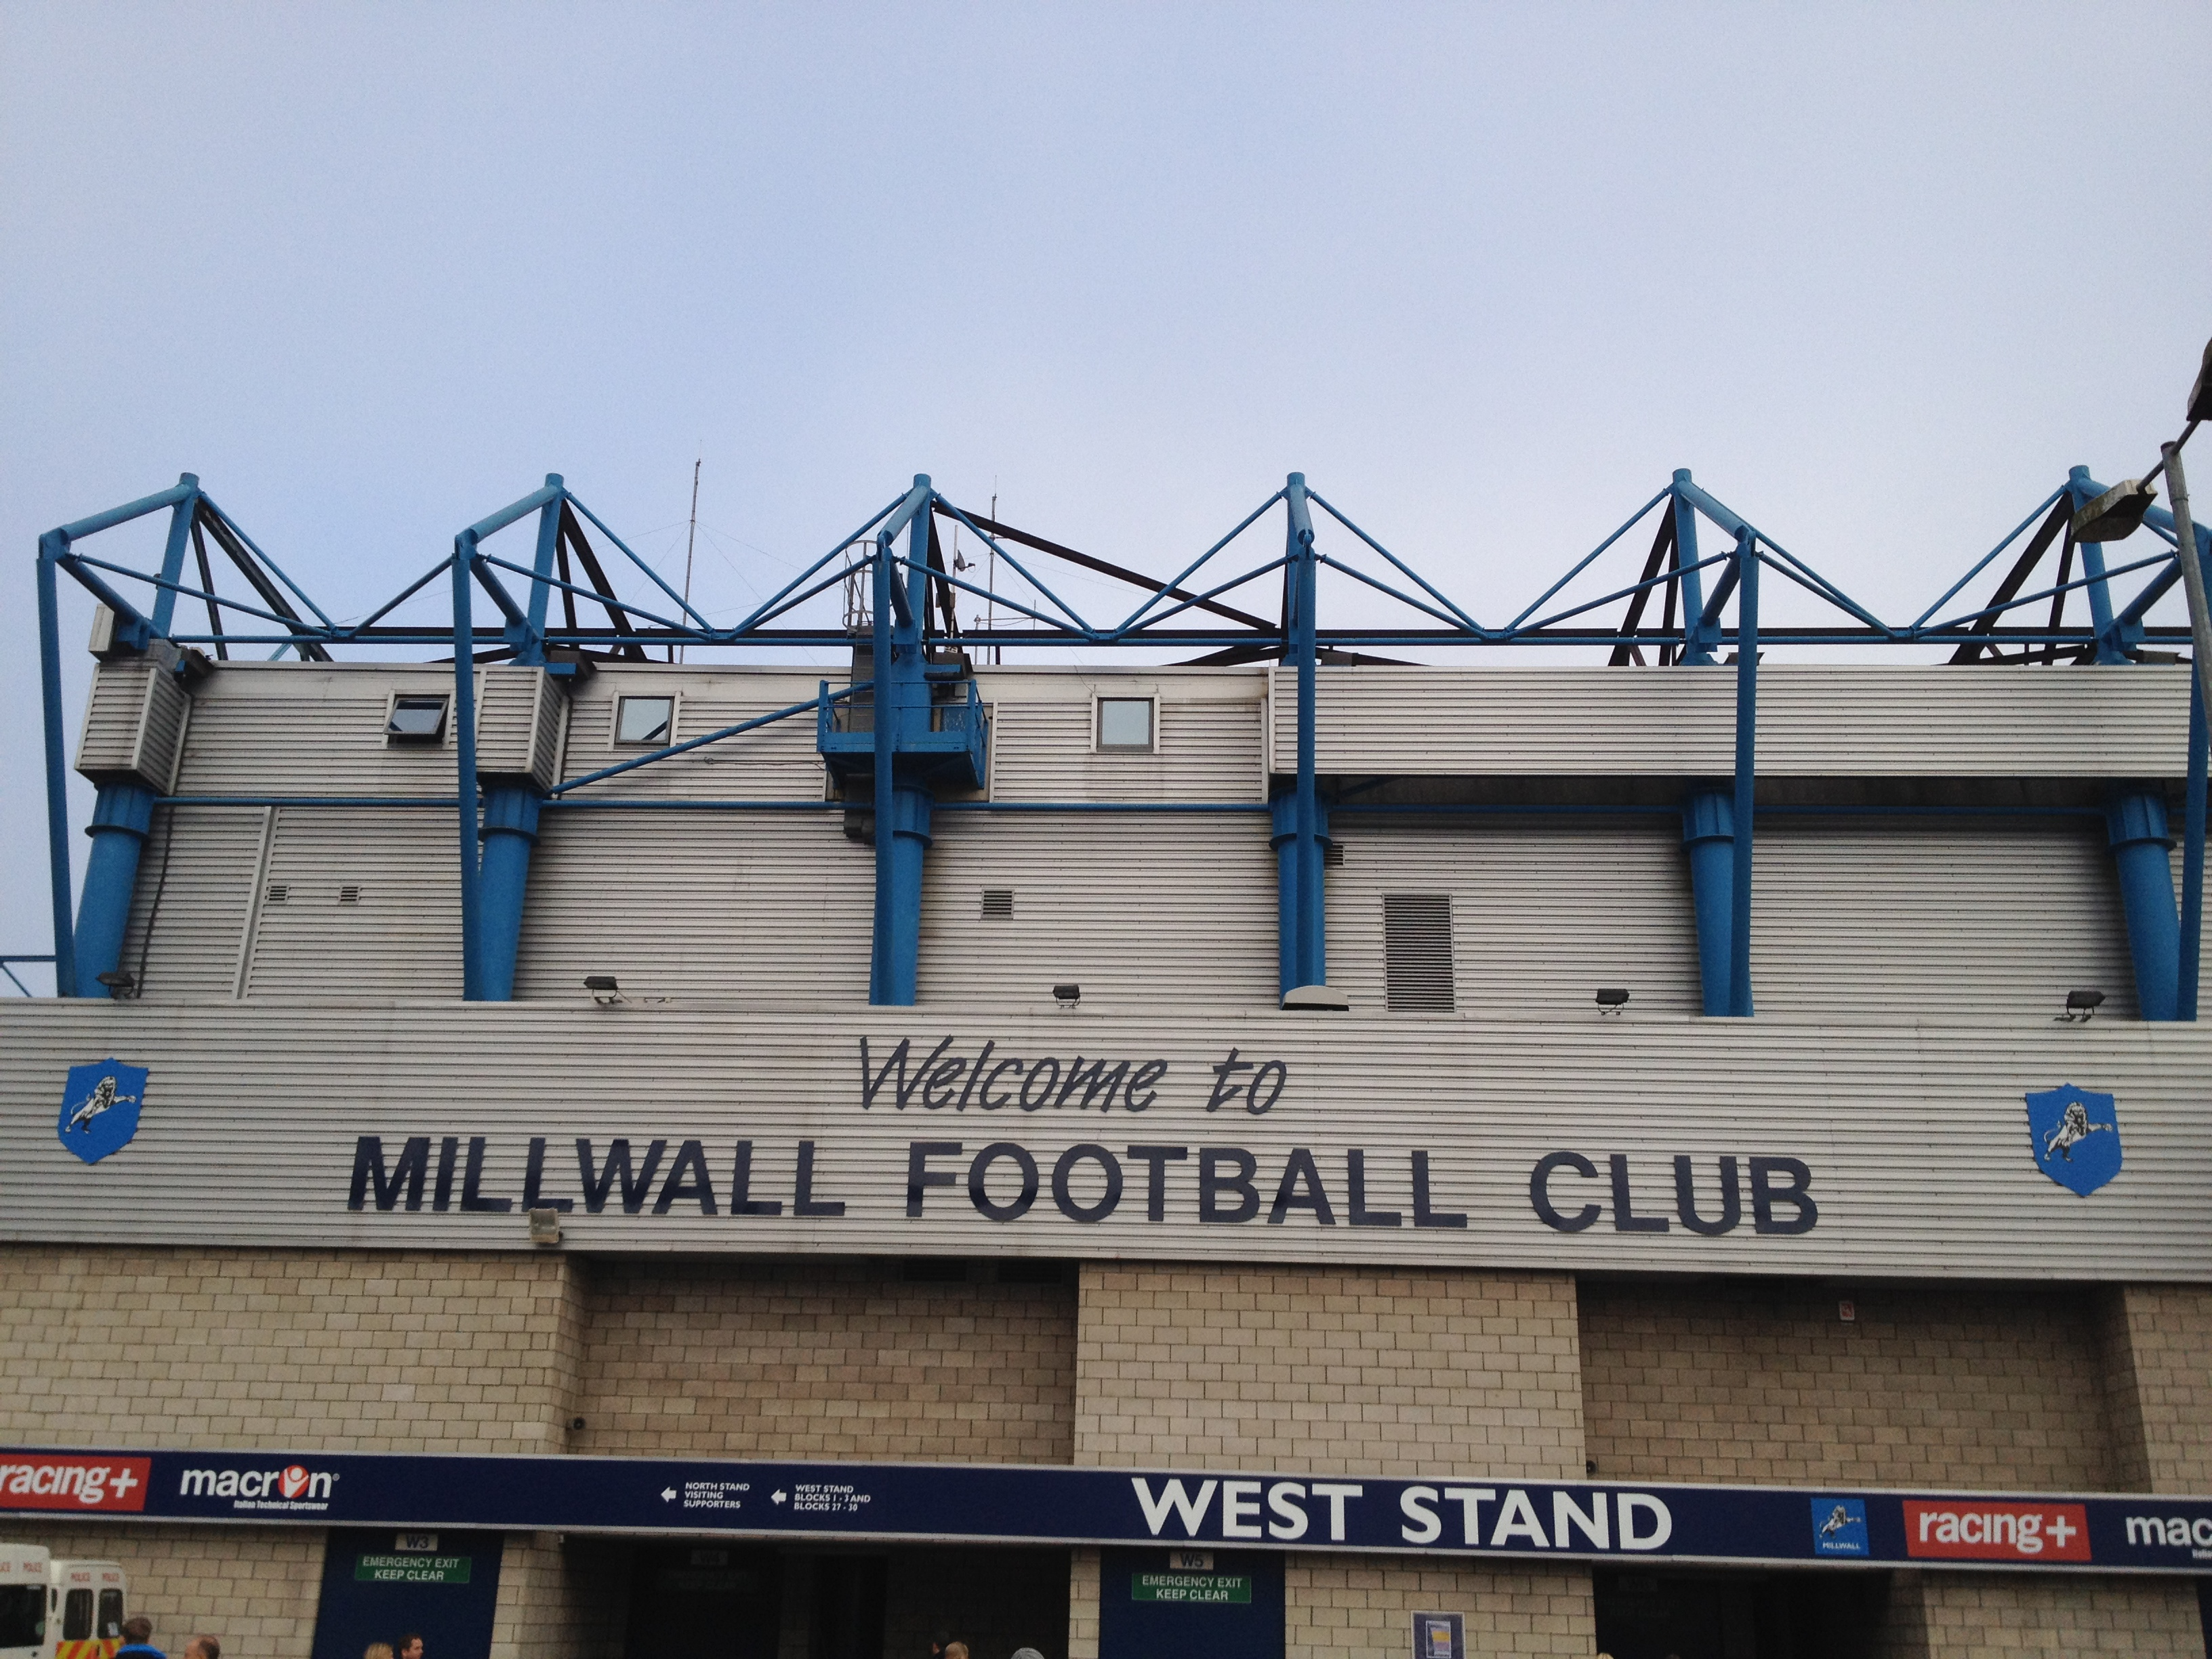 millwall game today